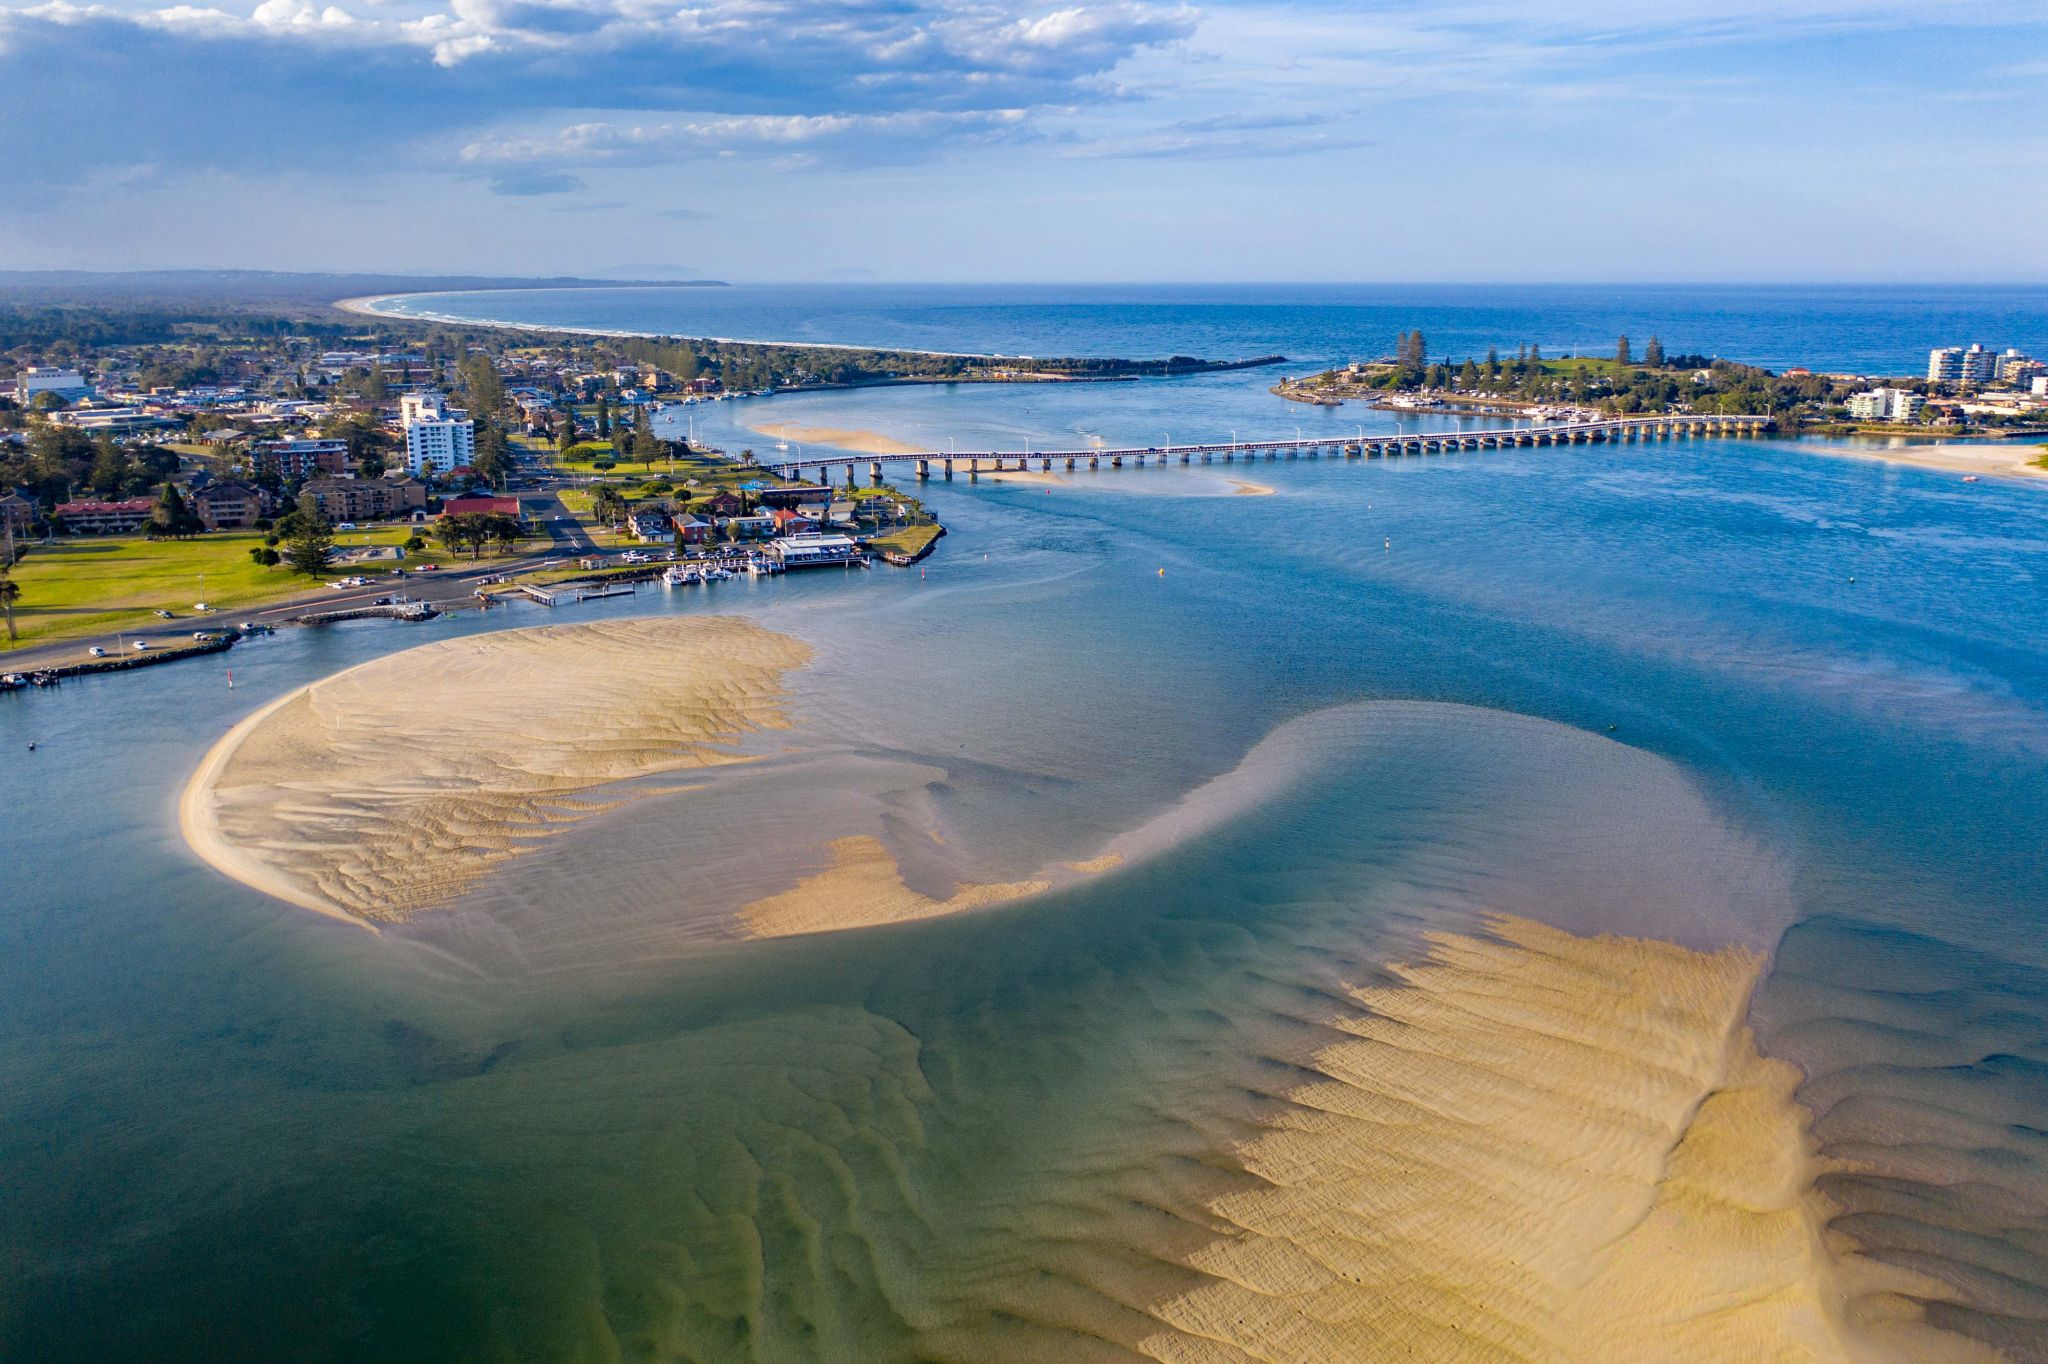 Forster Tuncurry Bridge and sand bar. New South Wales, Australia